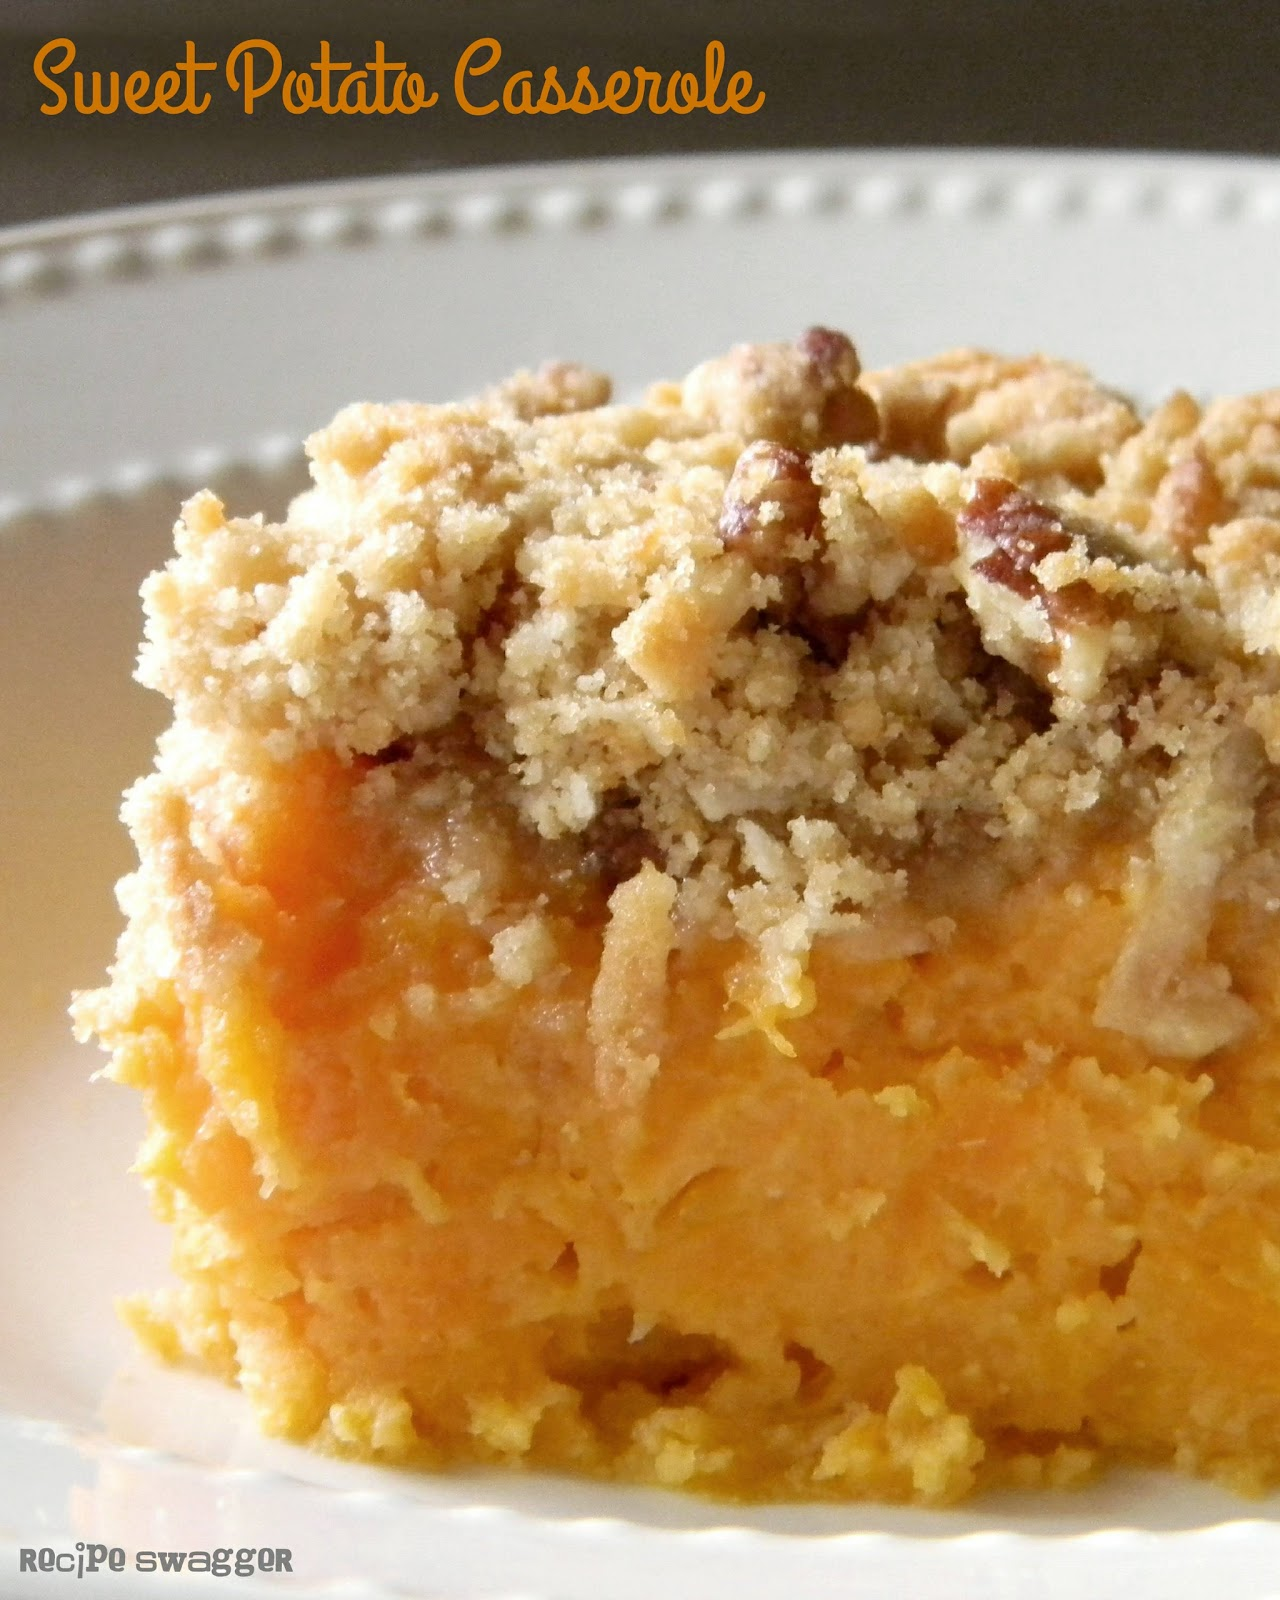 Recipe Swagger: Sweet Potato Casserole